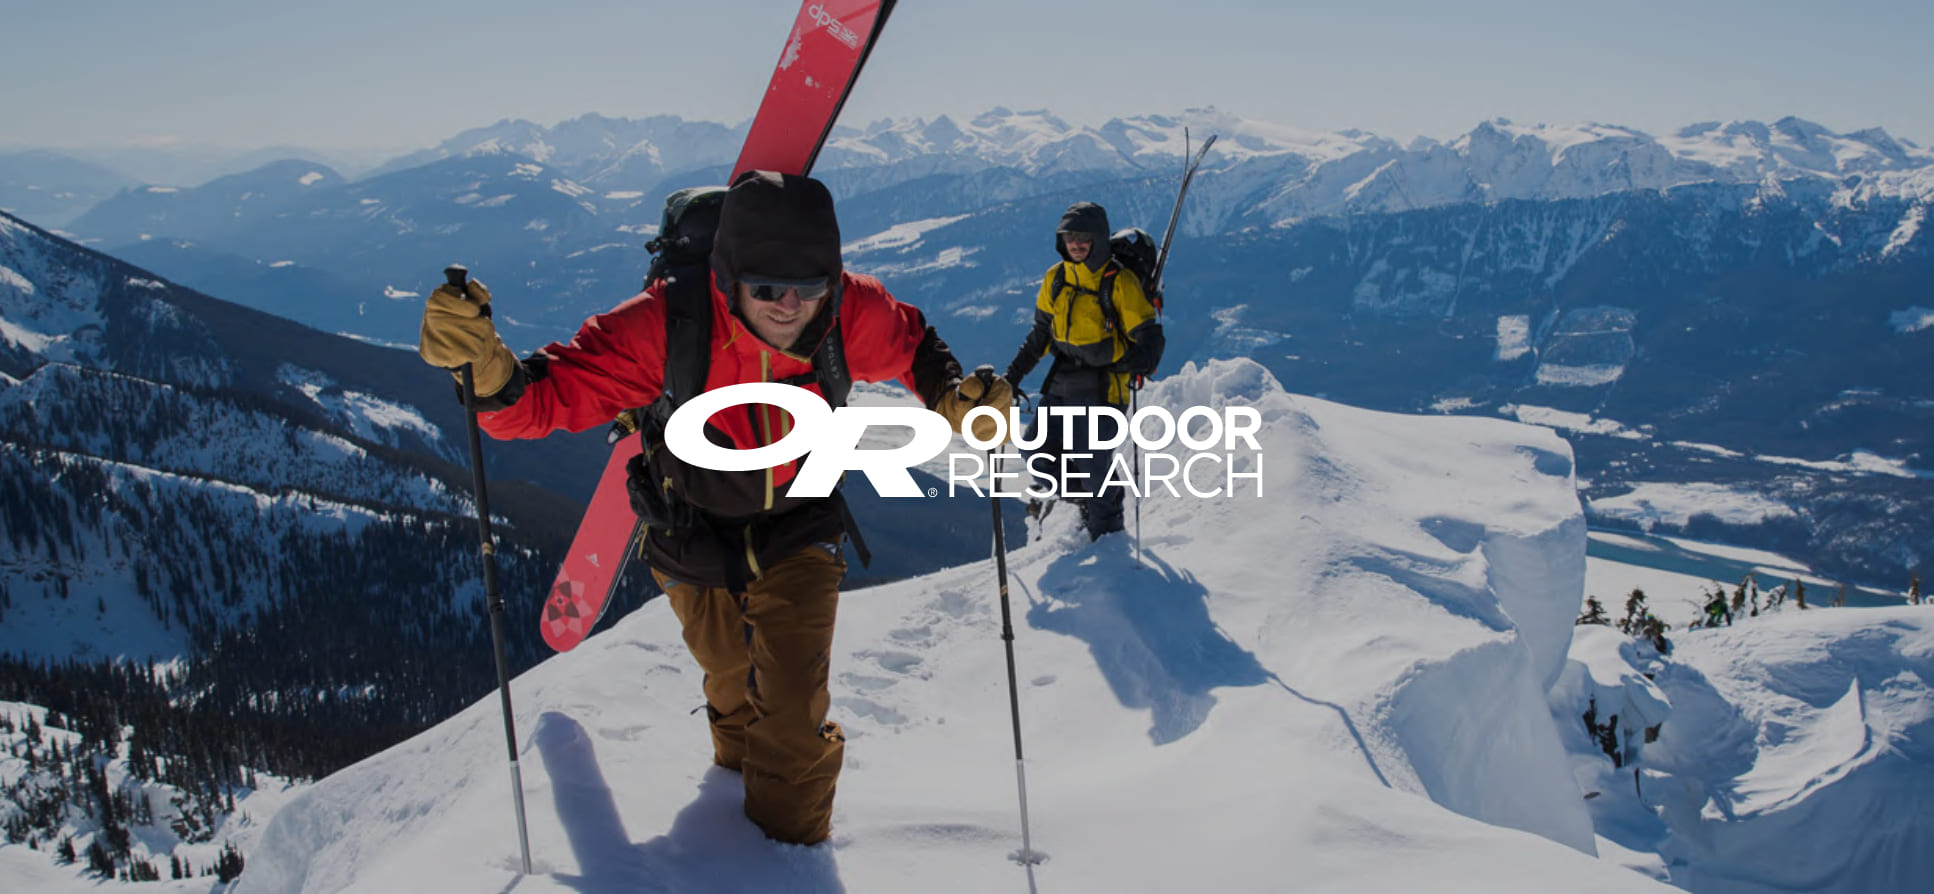 outdoor research hero background - referral program talkable